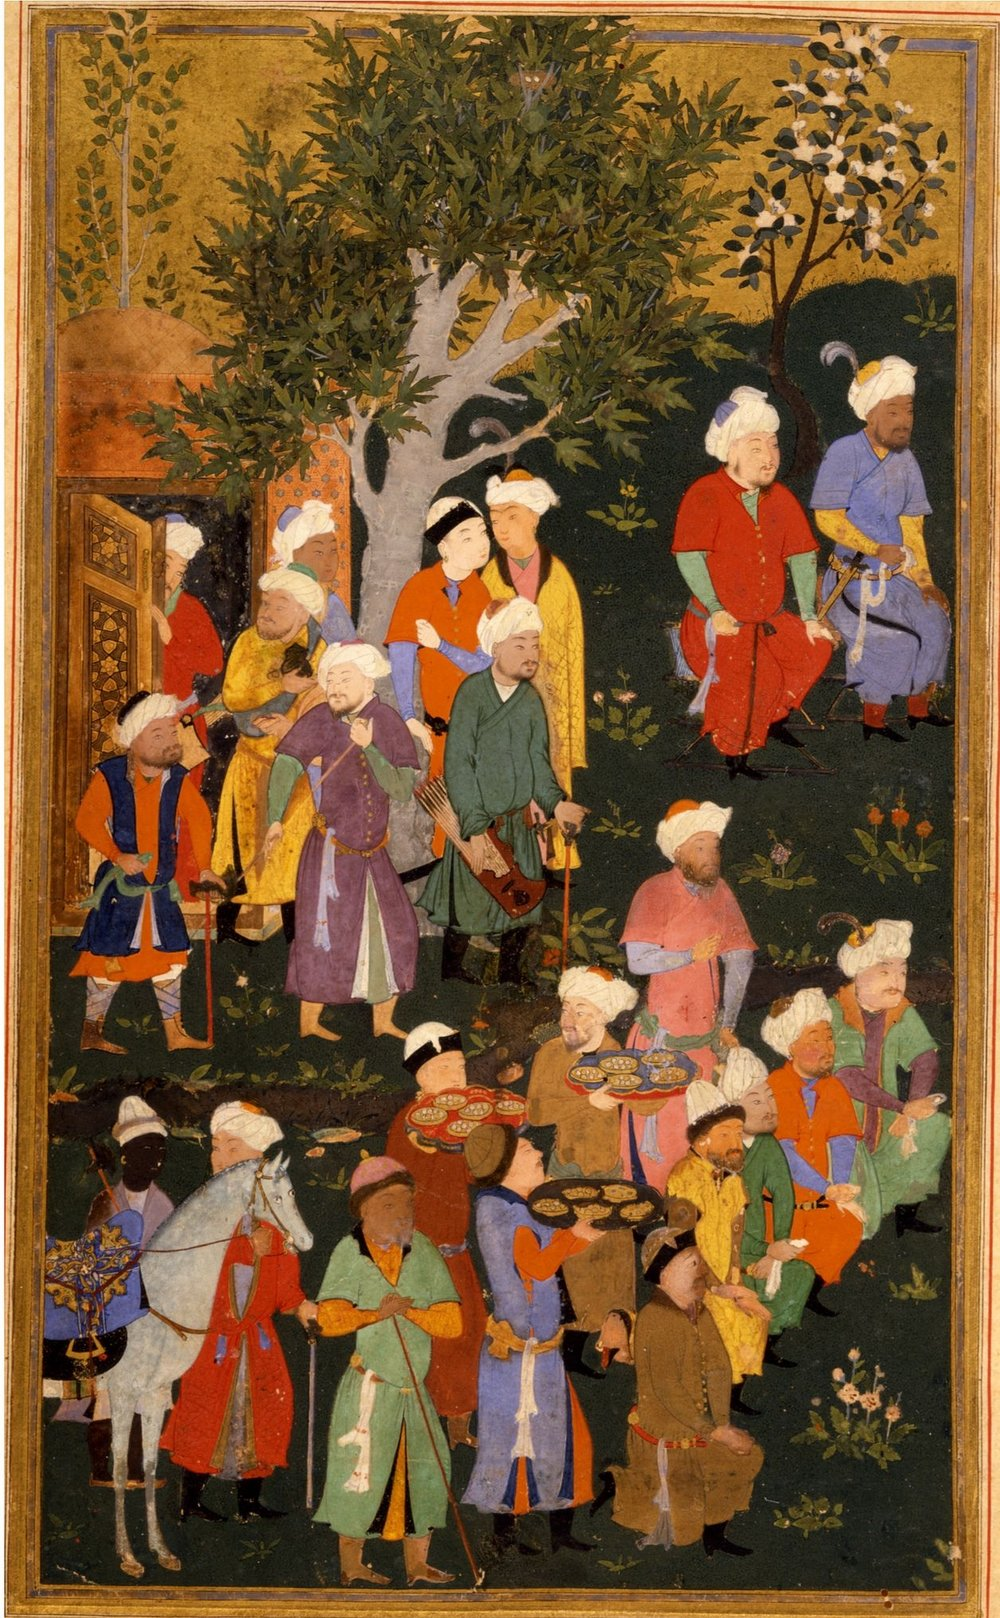 Timur Granting Audience on the Occasion of His Accession , attributed to Behzad John Hopkins University Archives, c. 1467